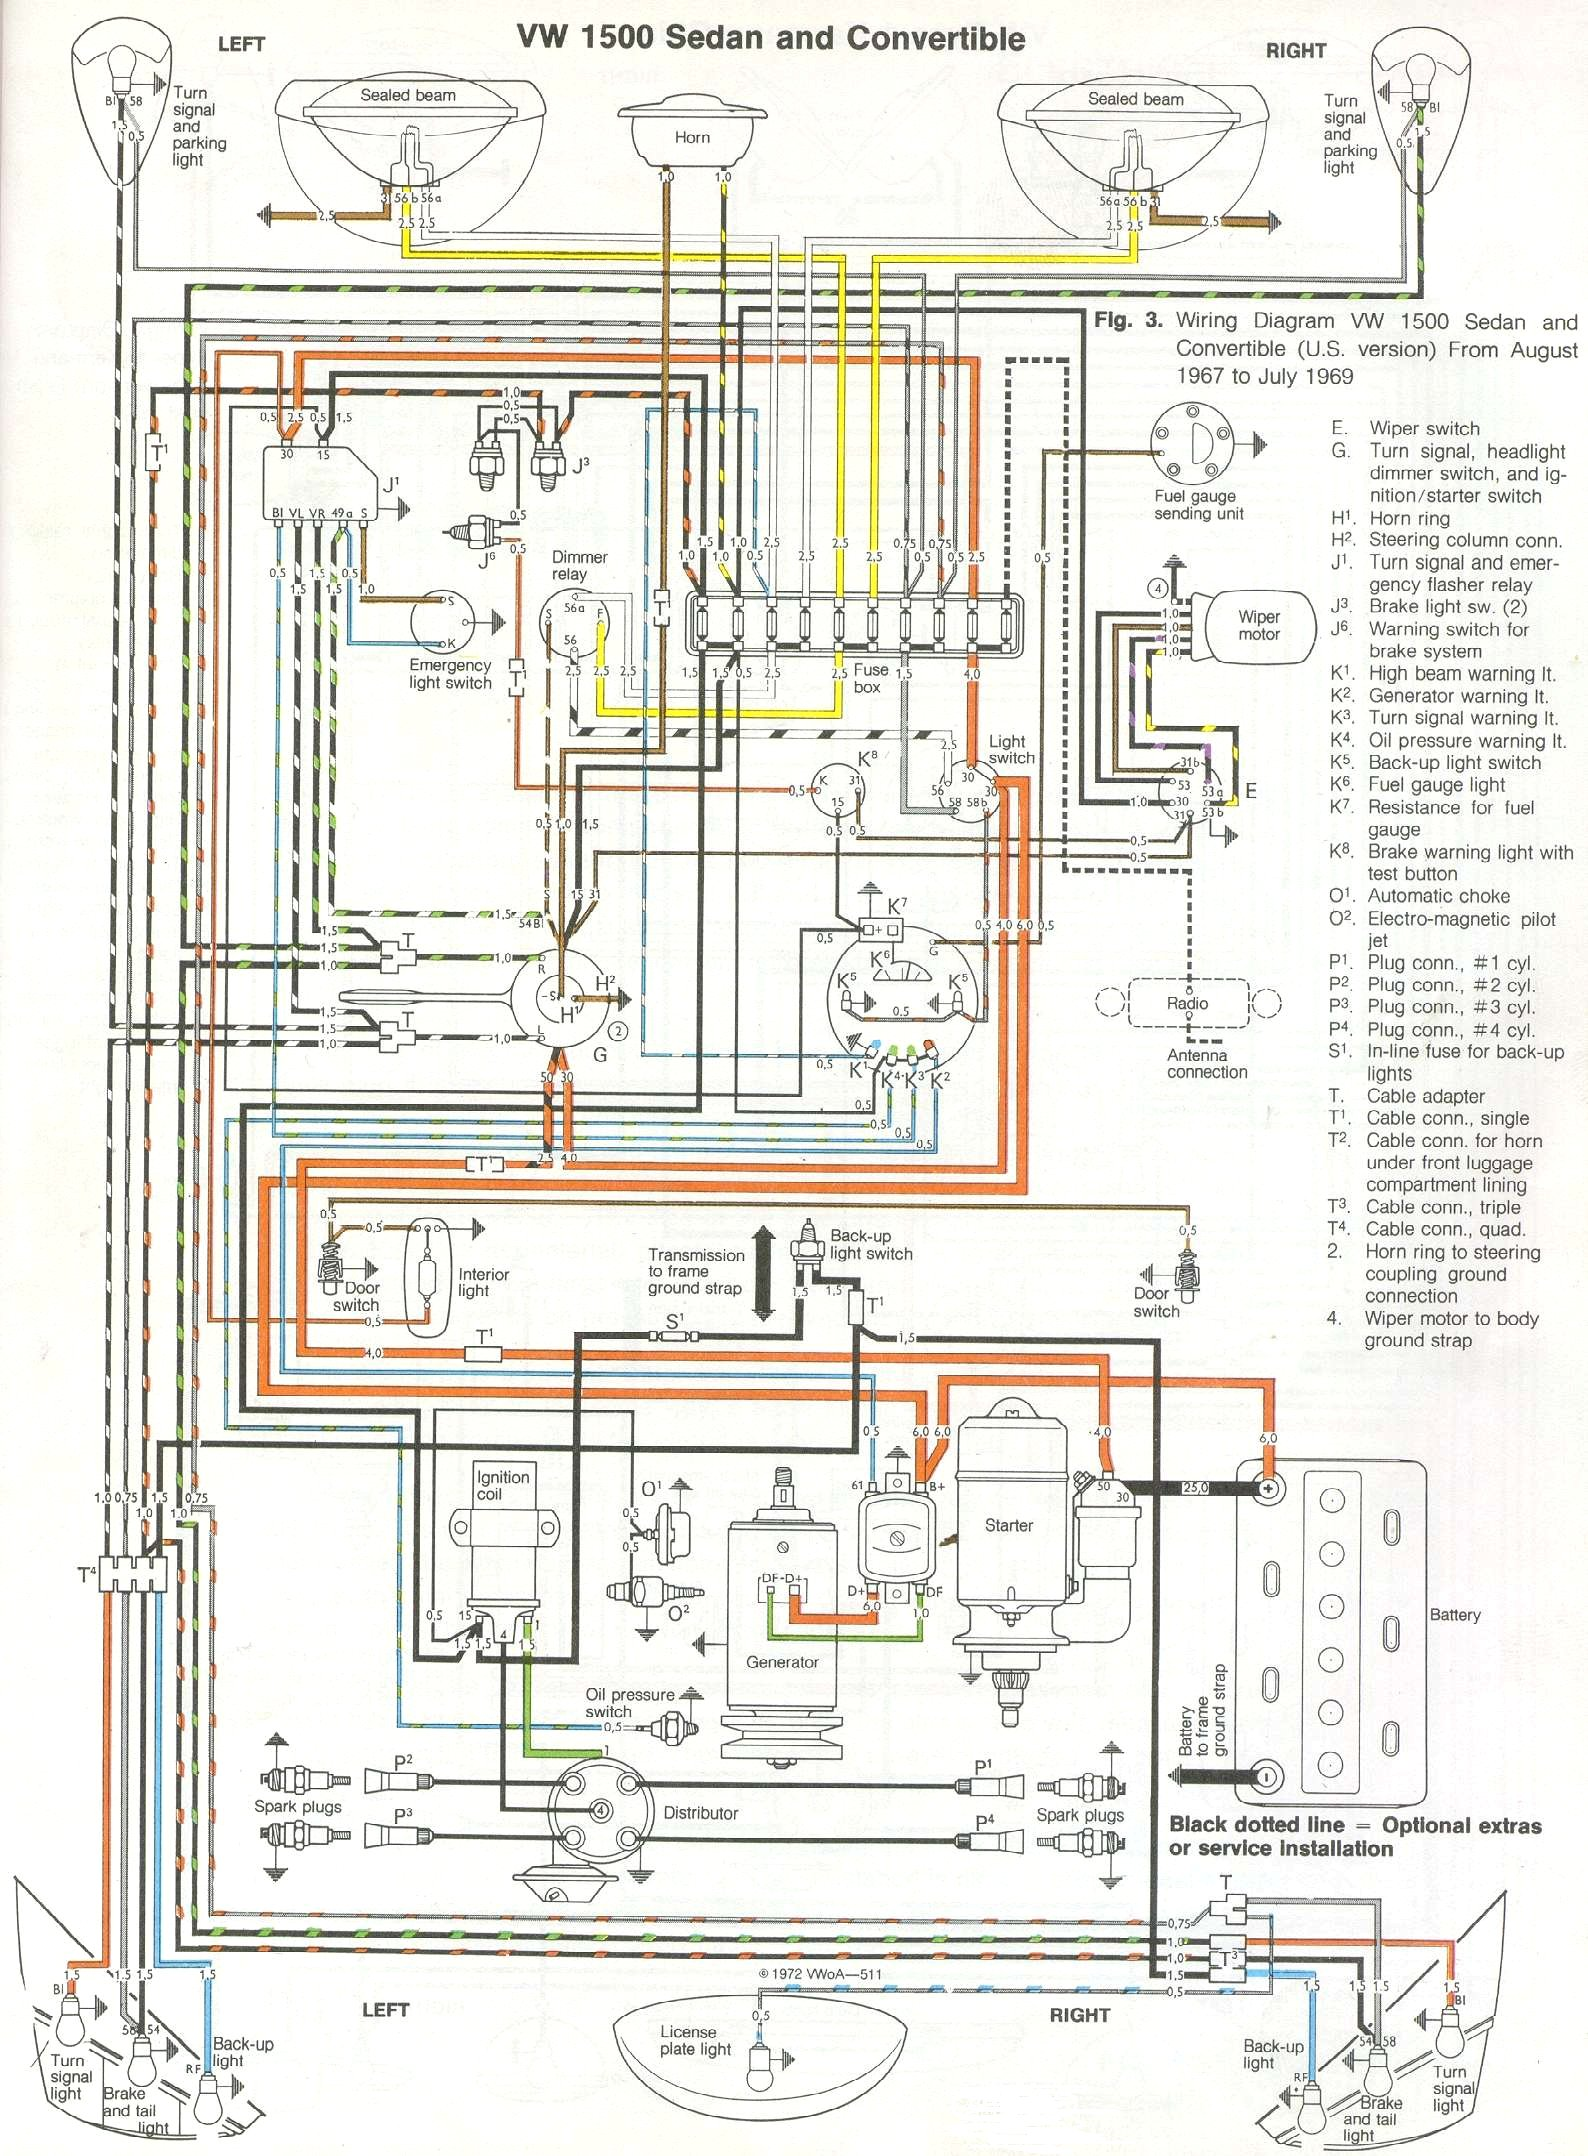 1968 69 beetle wiring diagram usa thegoldenbug com rh thegoldenbug com 1969 VW 1600 Wiring-Diagram 1969 VW Beetle Wiring Diagram